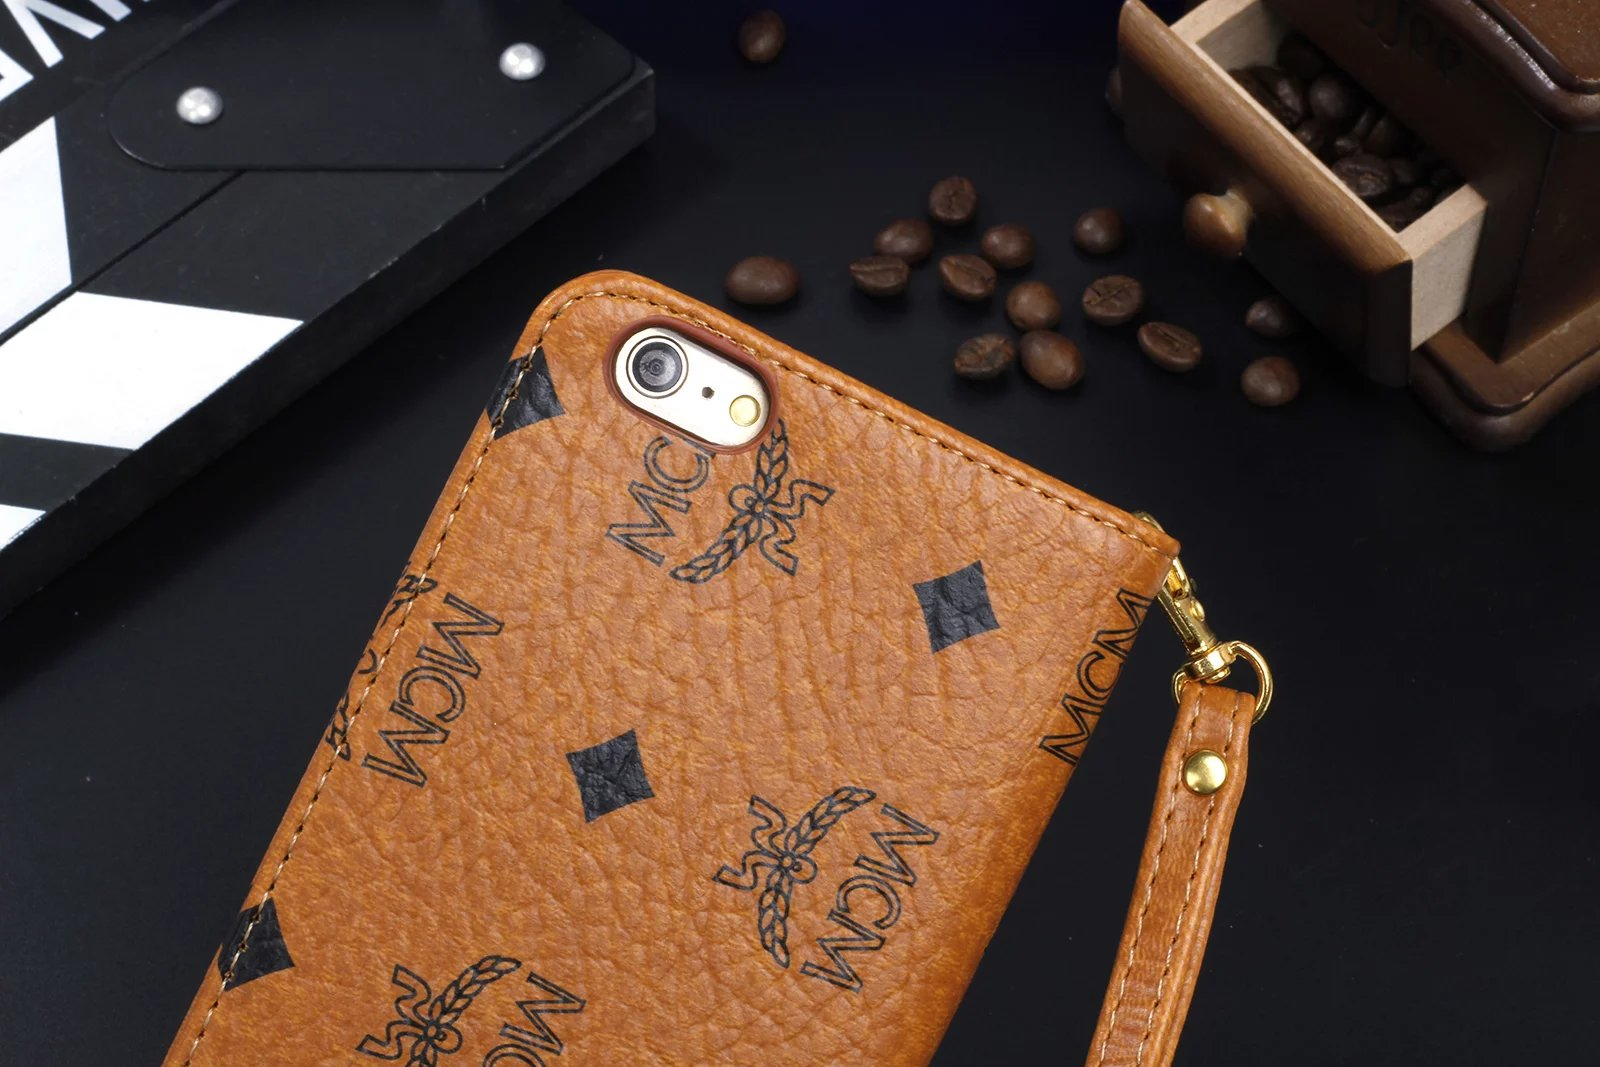 phone covers for iphone 6s Plus cover case for iphone 6s Plus fashion iphone6s plus case where can i buy iphone 6s cases phonecases 6 s phone cases i phone cases ladies iphone 6 cases apple covers for iphone 6s